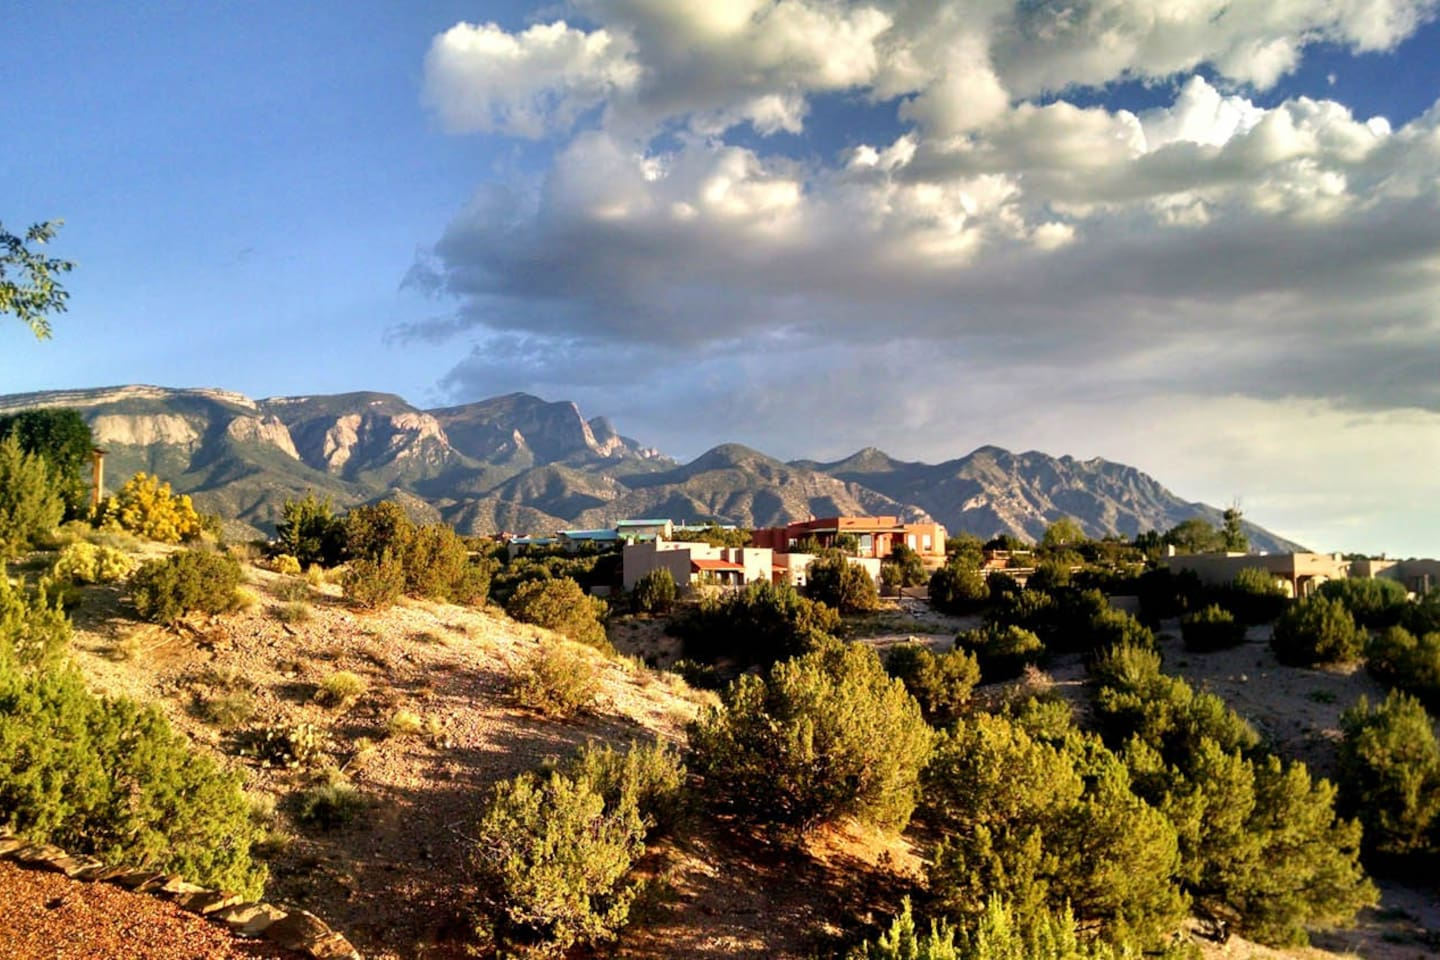 View of the Sandia Mountains changes every day.